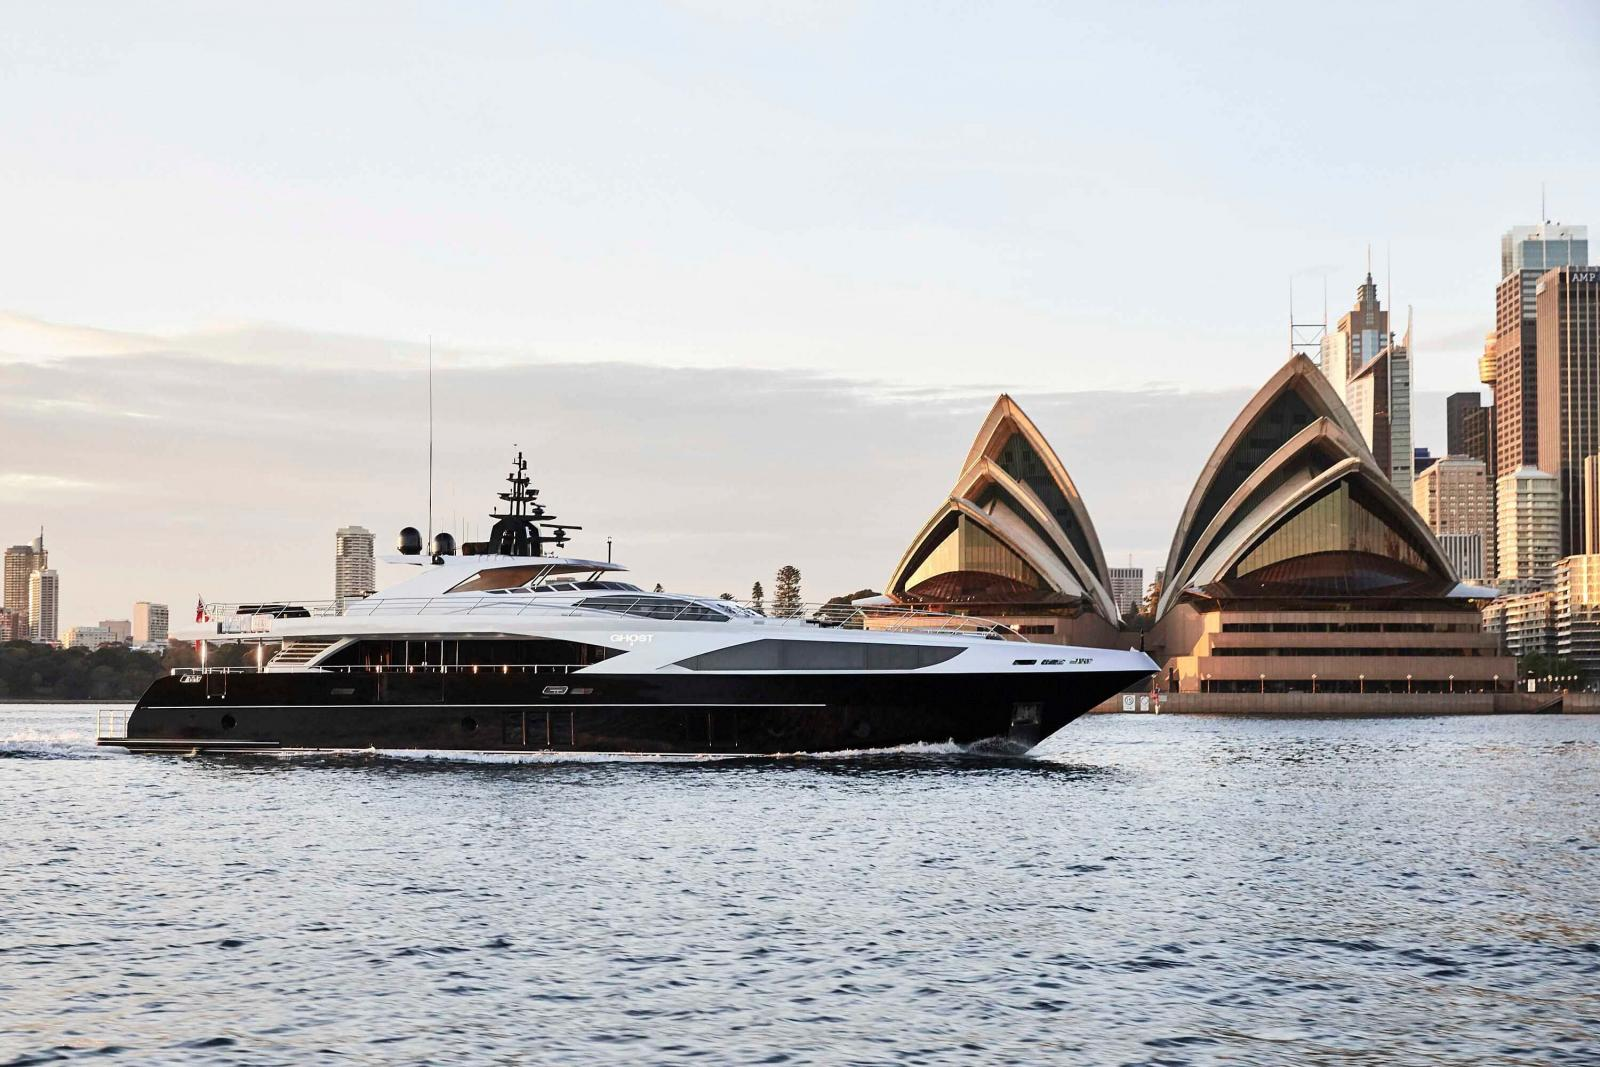 Gulf Craft Majesty 122 MY Ghost II the Largest Superyacht at Sydney International Boat Show